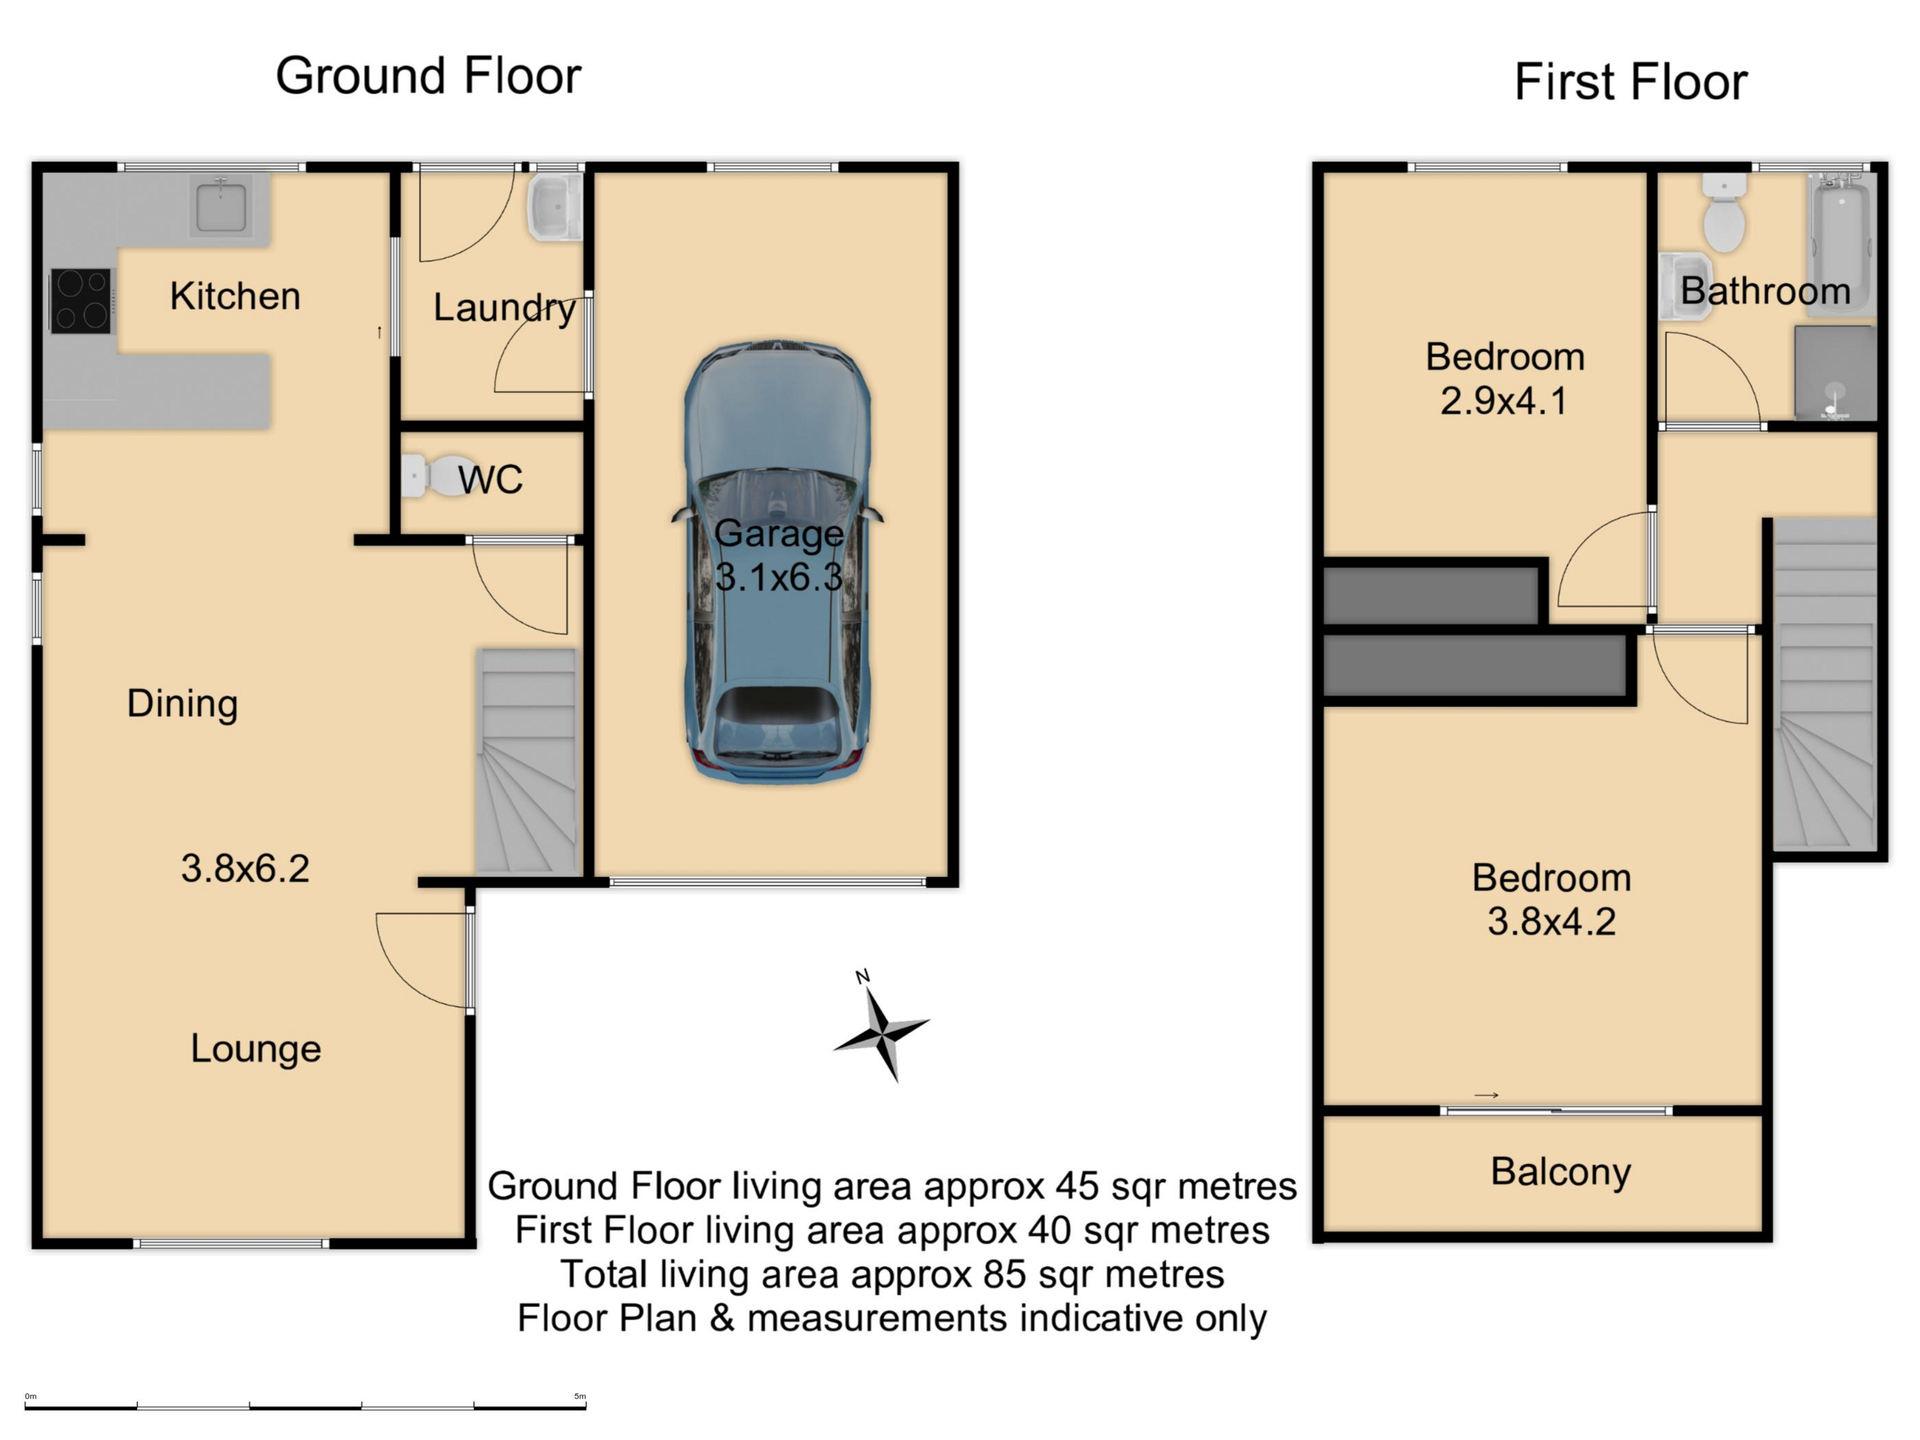 1/67 Kenna Street - Floor Plan